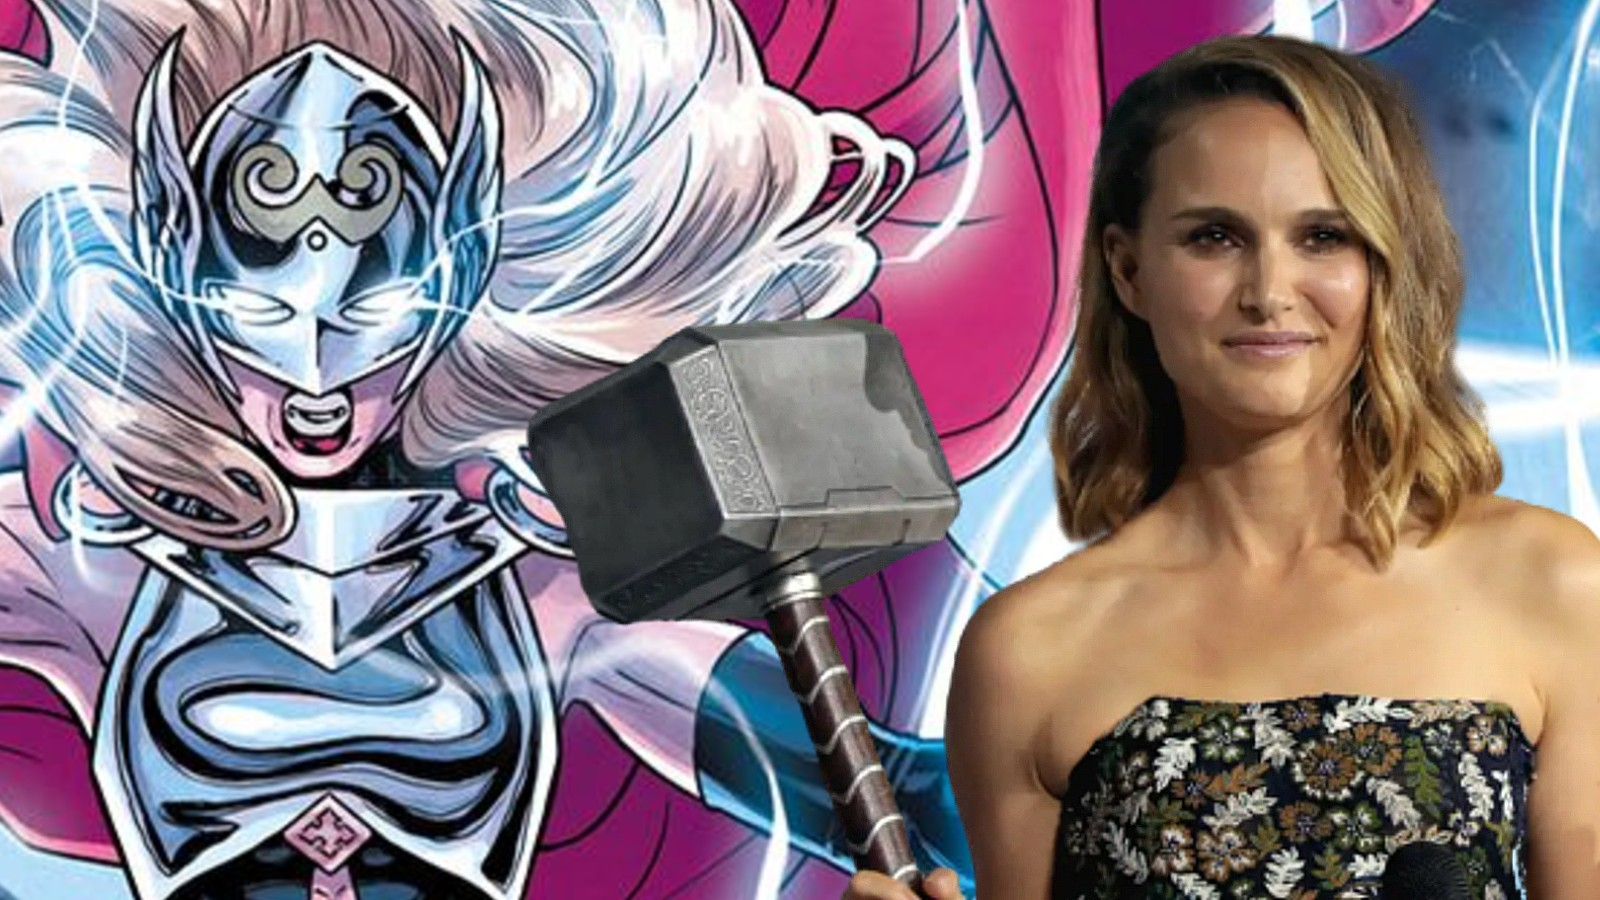 Natalie Portman as The Might Thor